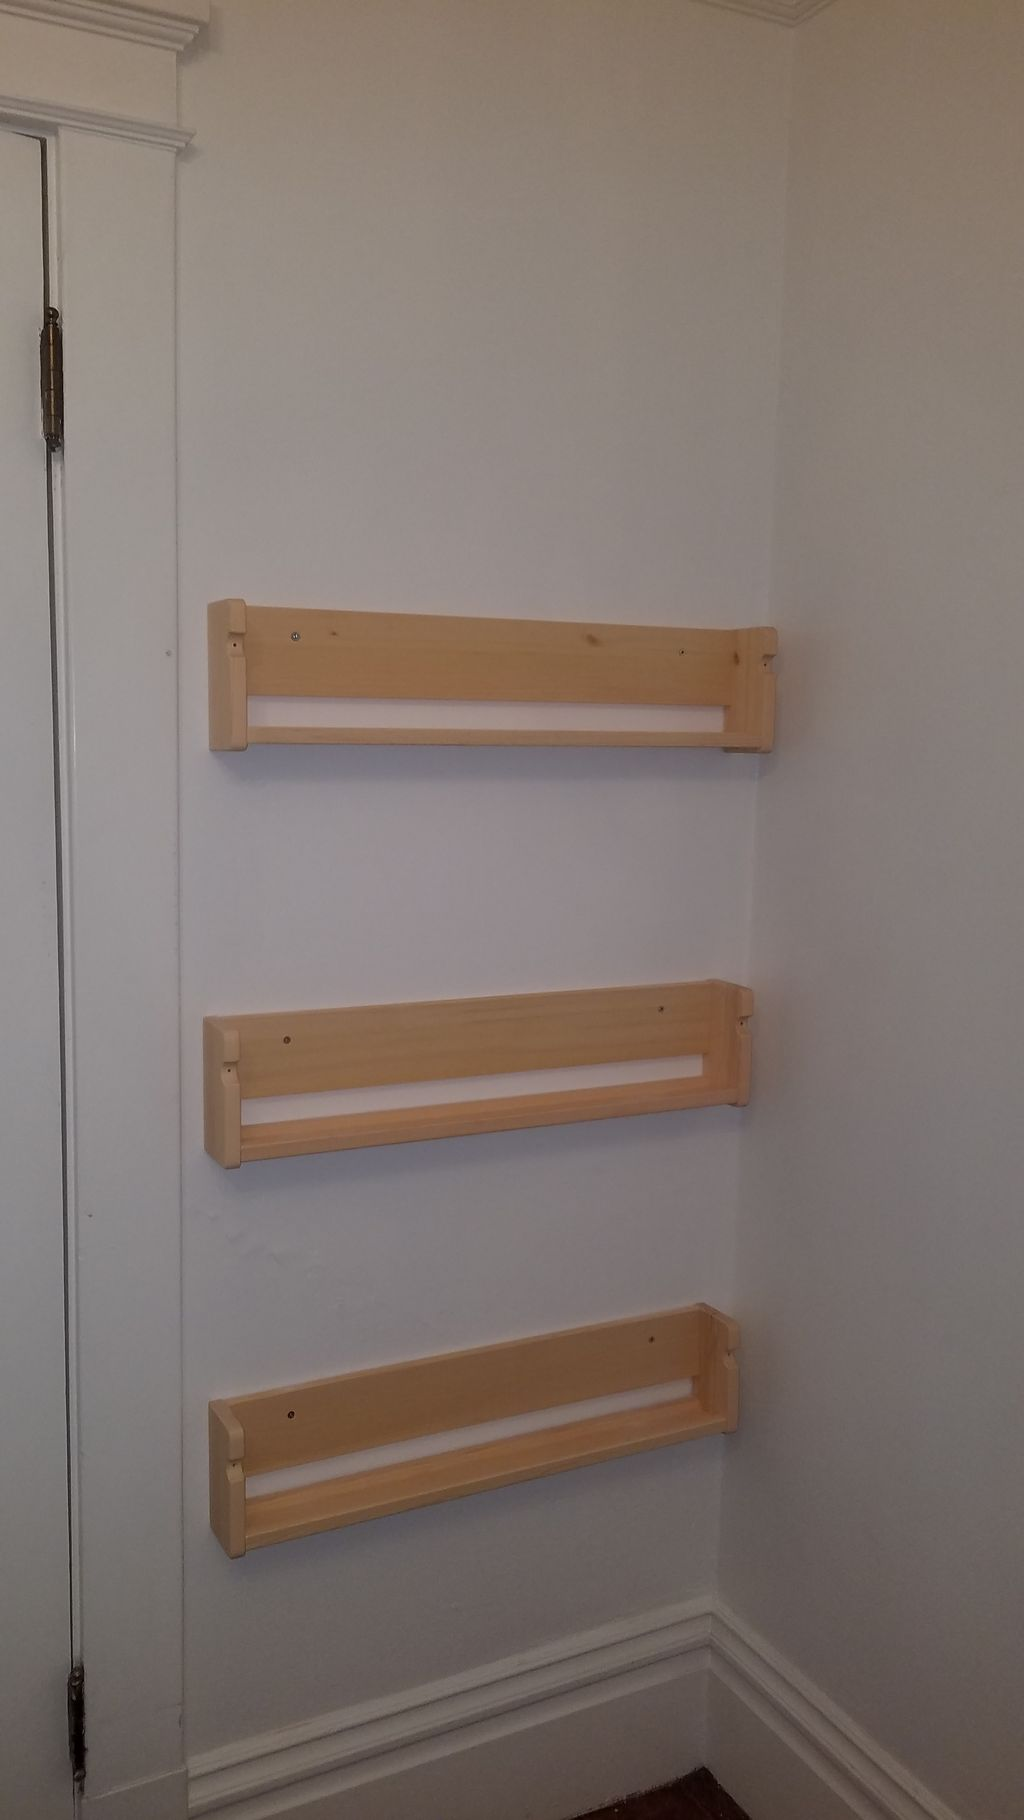 Installation of shelves and curtains